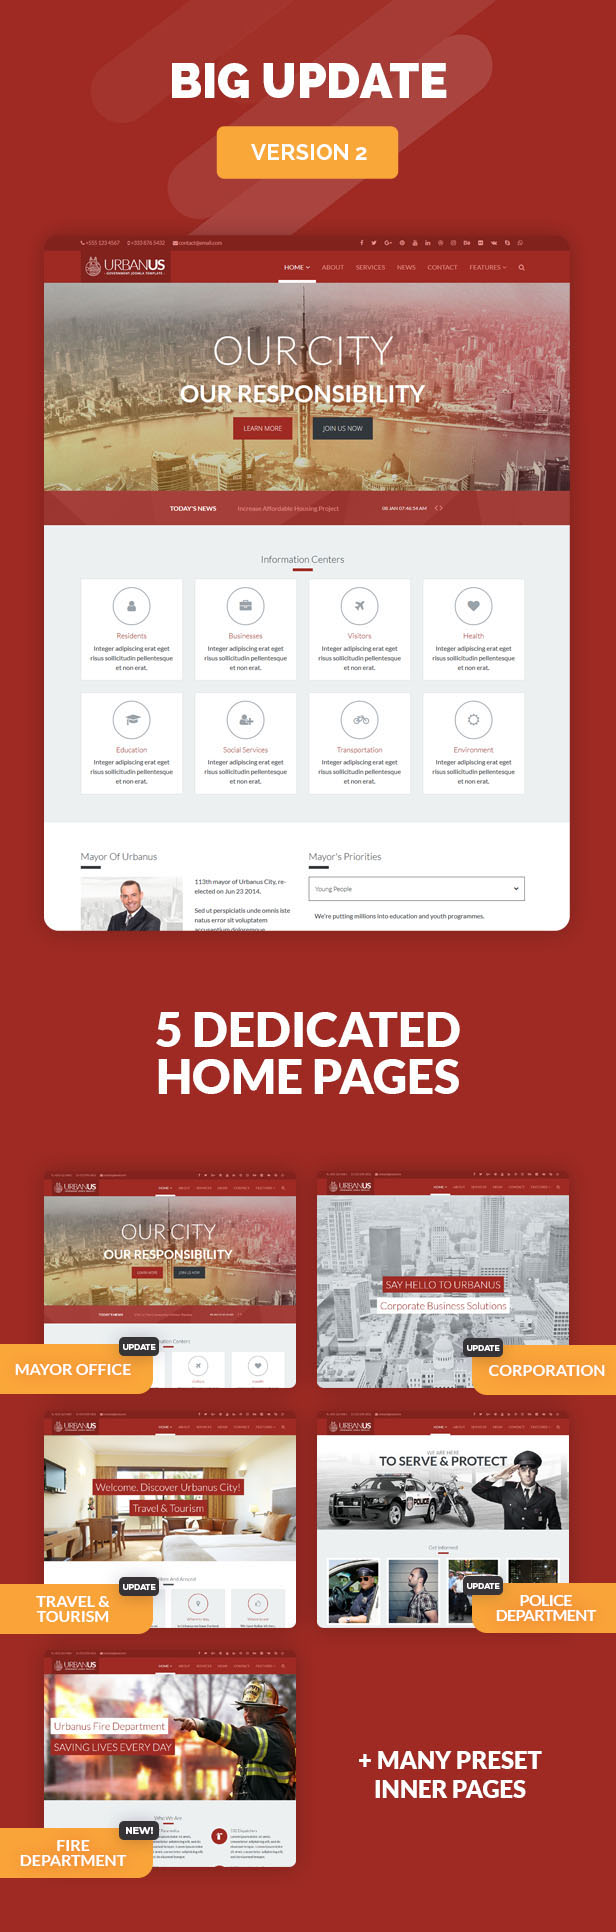 Urbanus - Responsive Government Joomla Template - 1